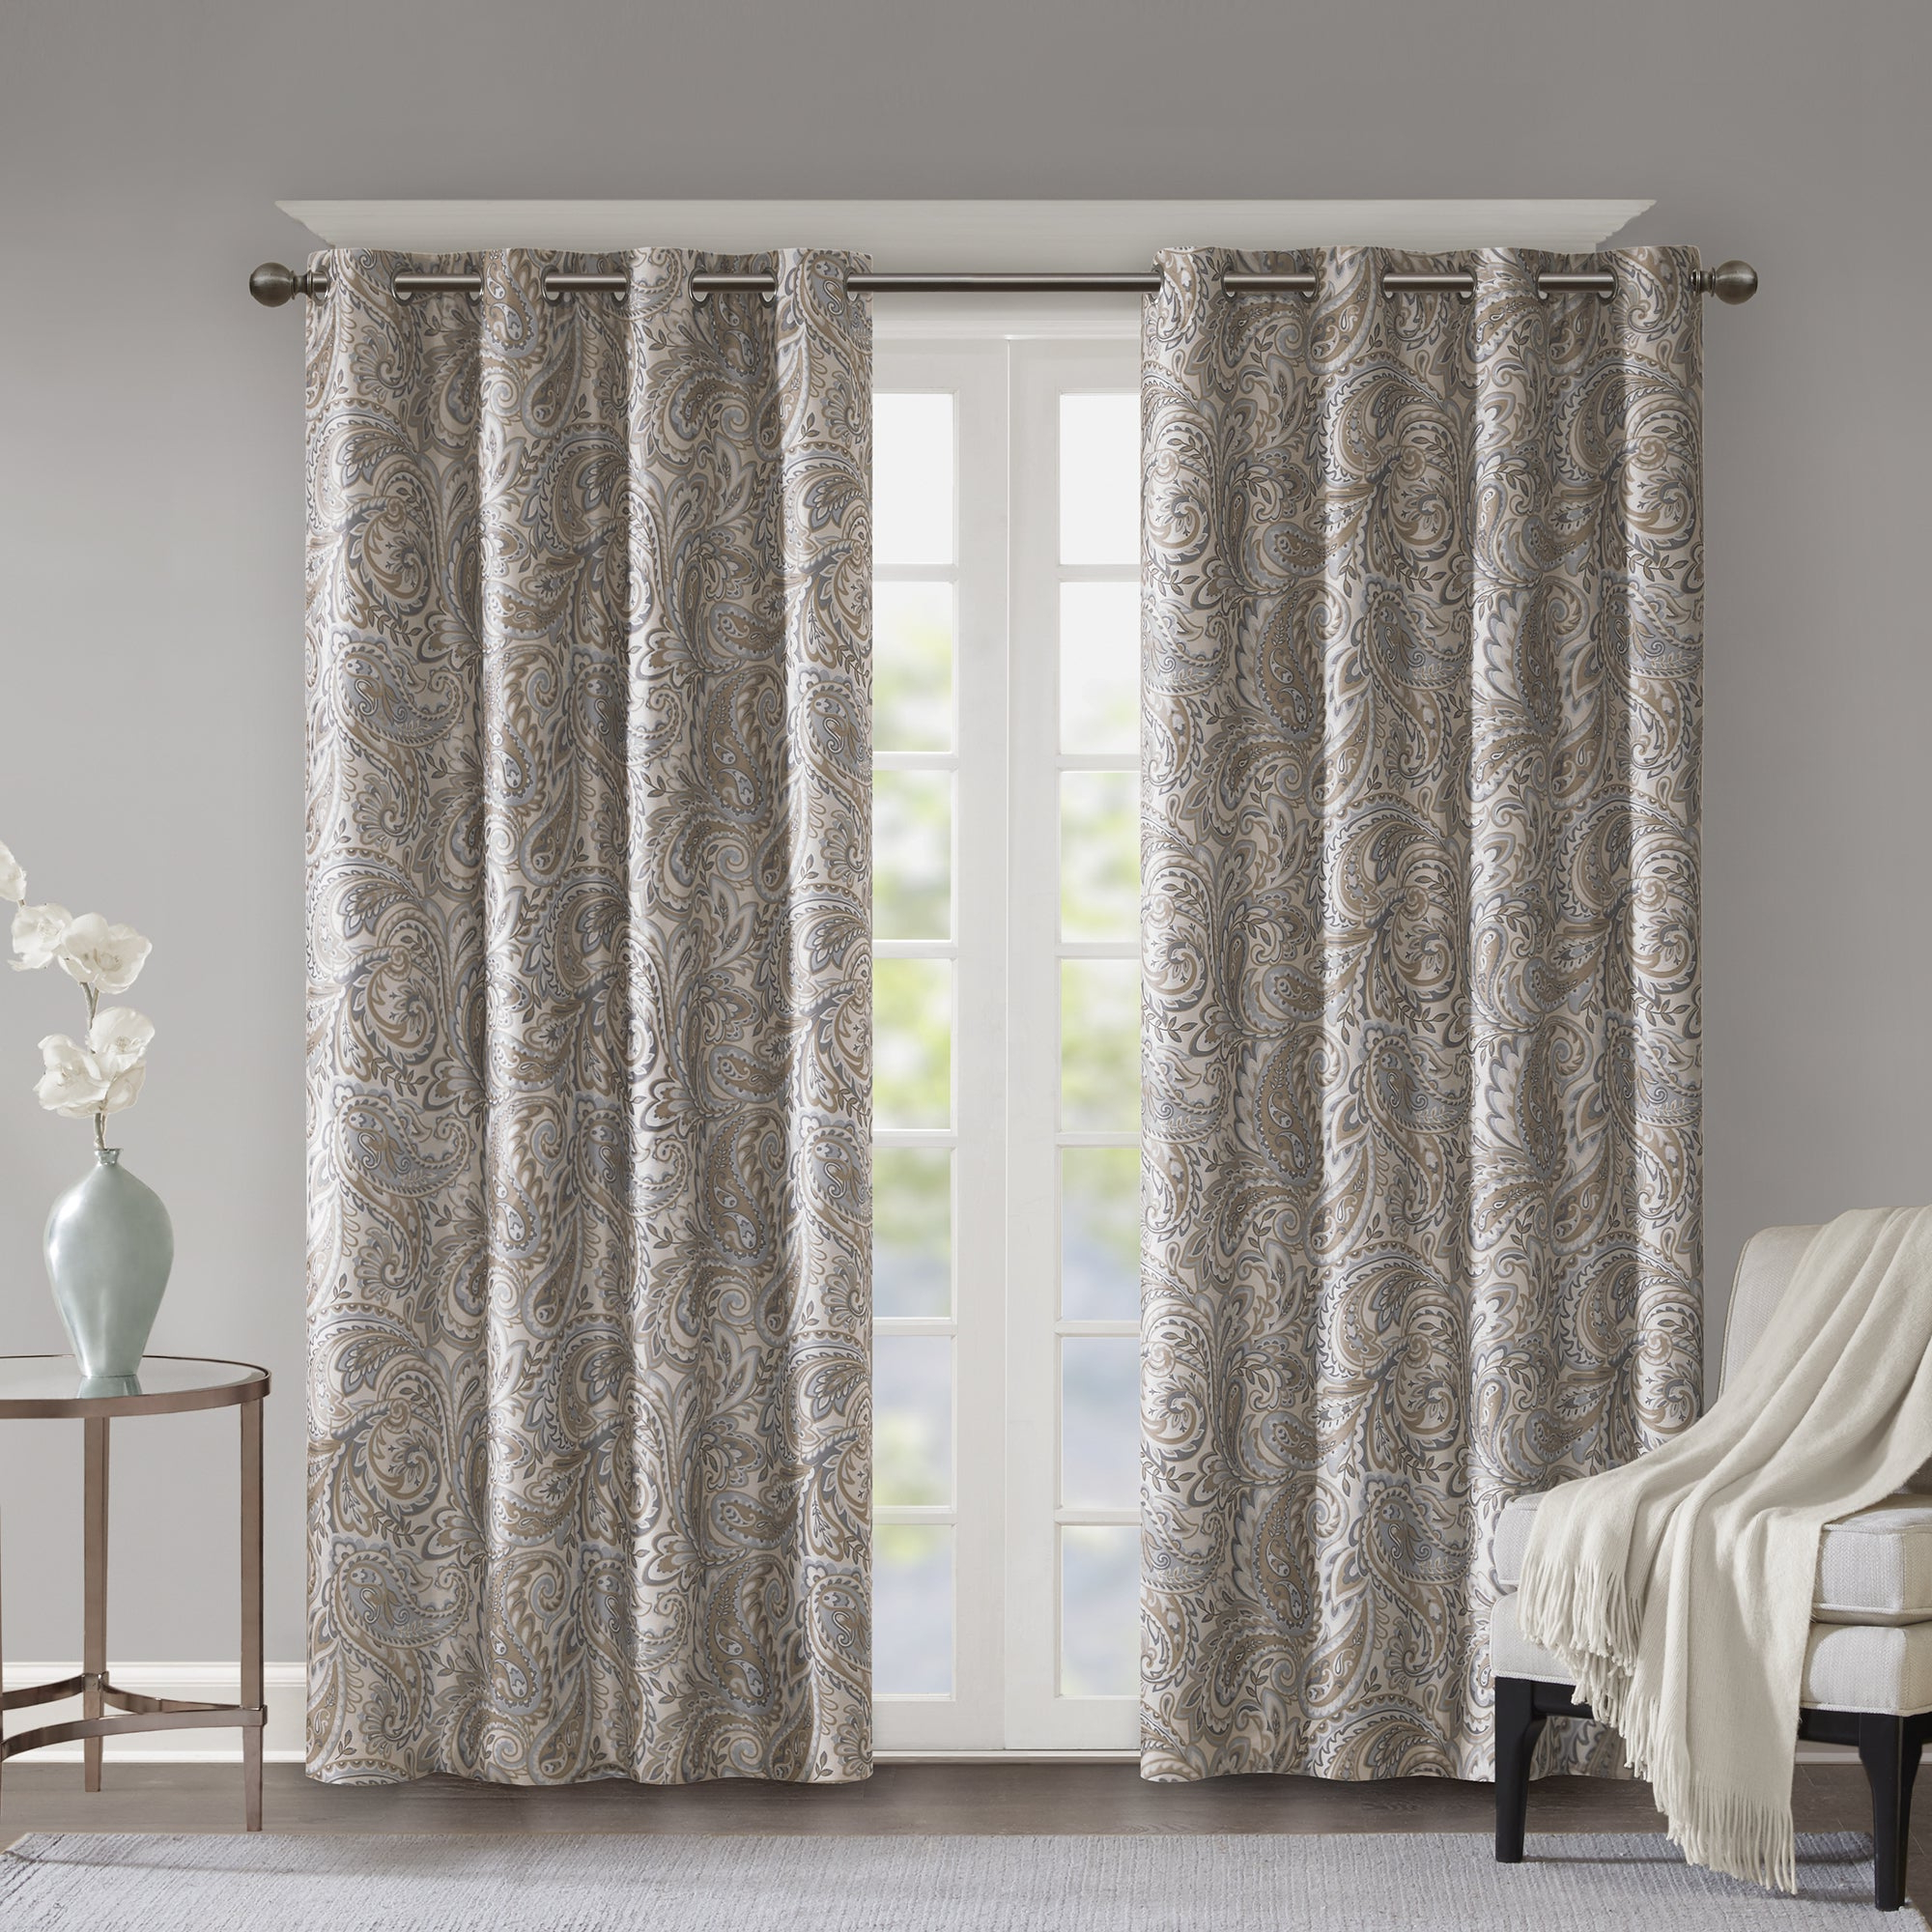 Favorite Gracewood Hollow Tucakovic Energy Efficient Fabric Blackout Curtains In Sunsmart Dahlia Paisley Printed Total Blackout Single Window Curtain Panel (View 15 of 20)